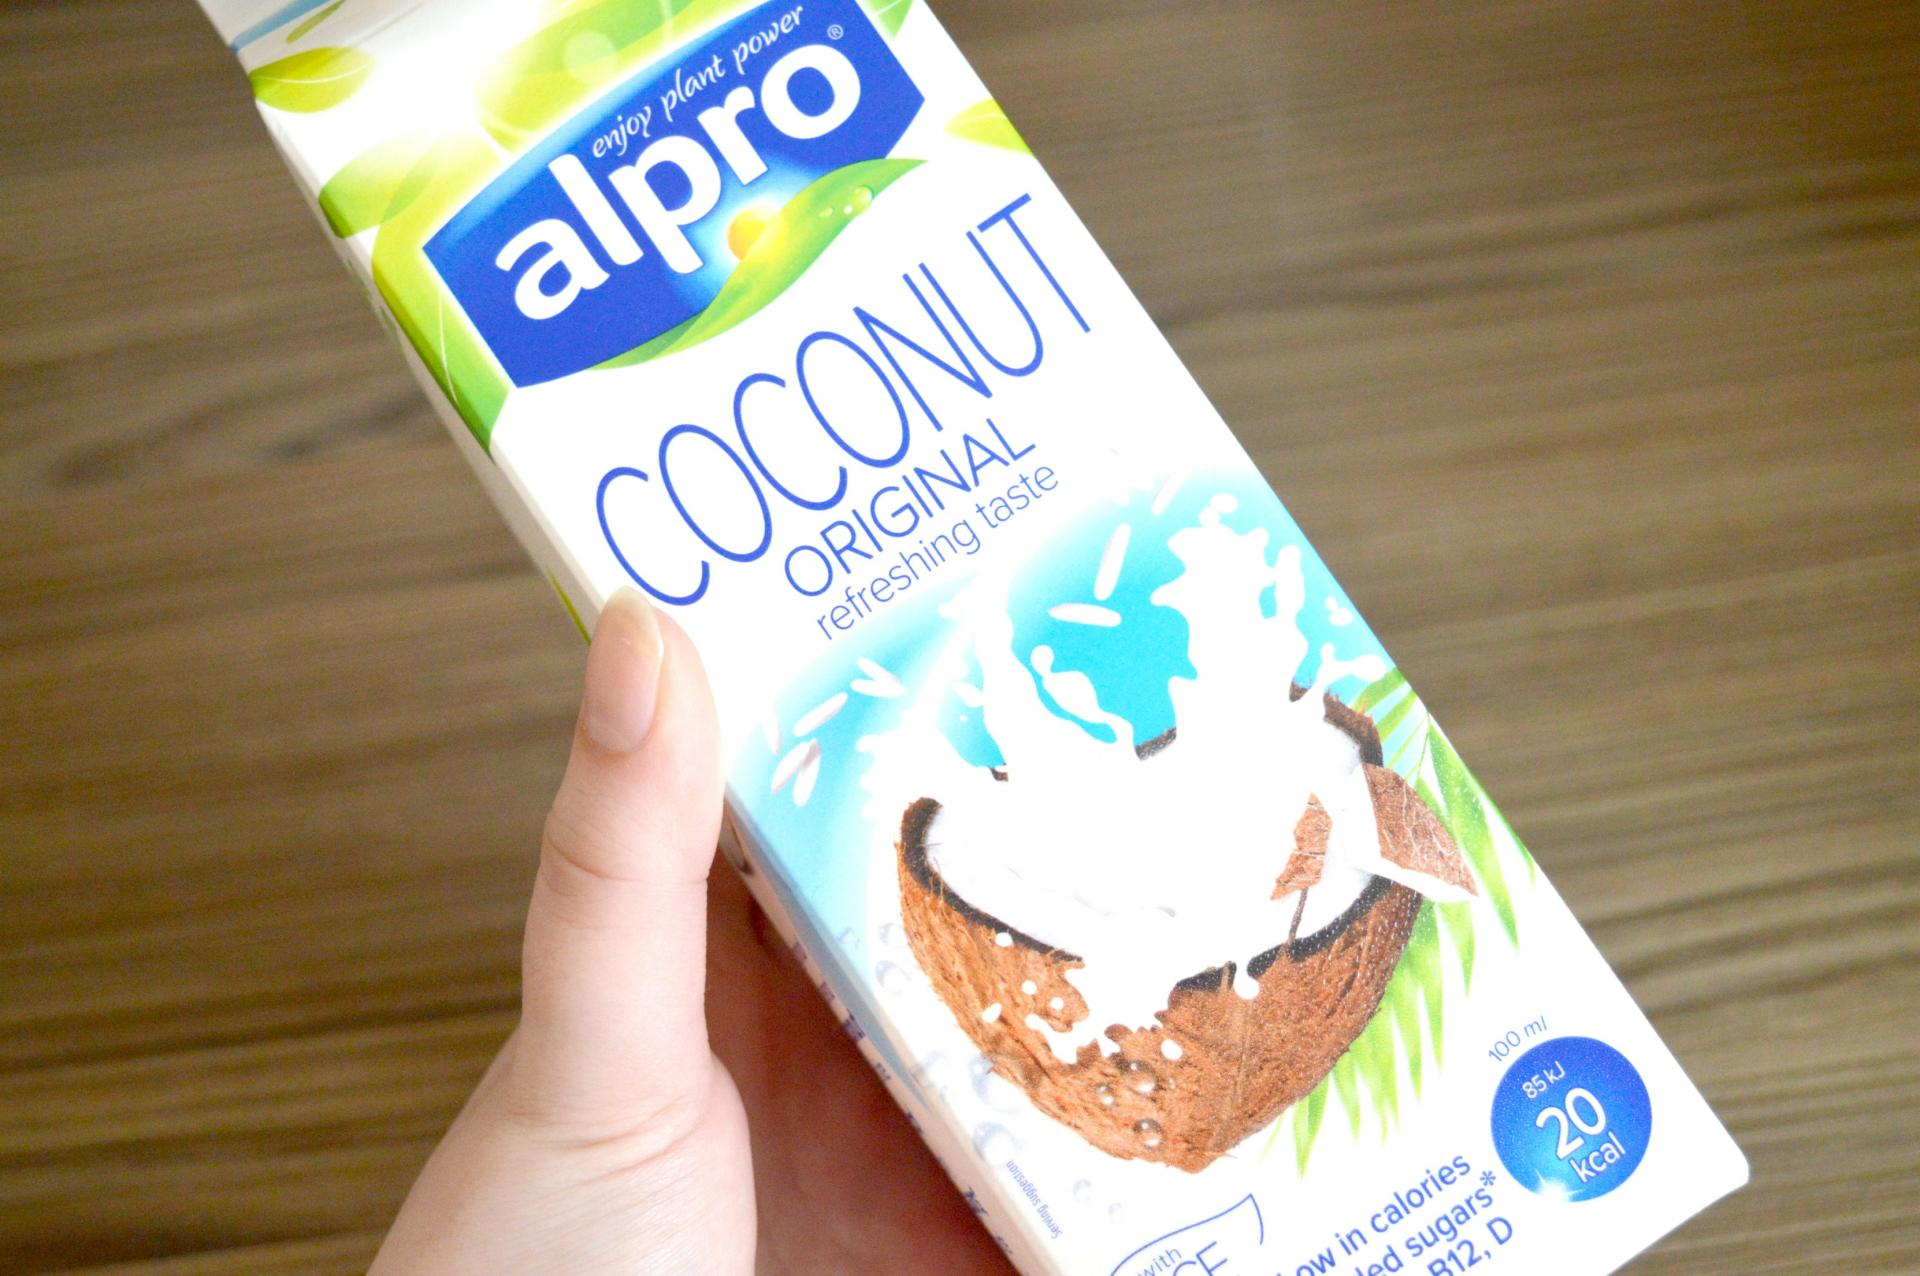 Alpro Coconut Original Drink from the Alpro Coconut Range